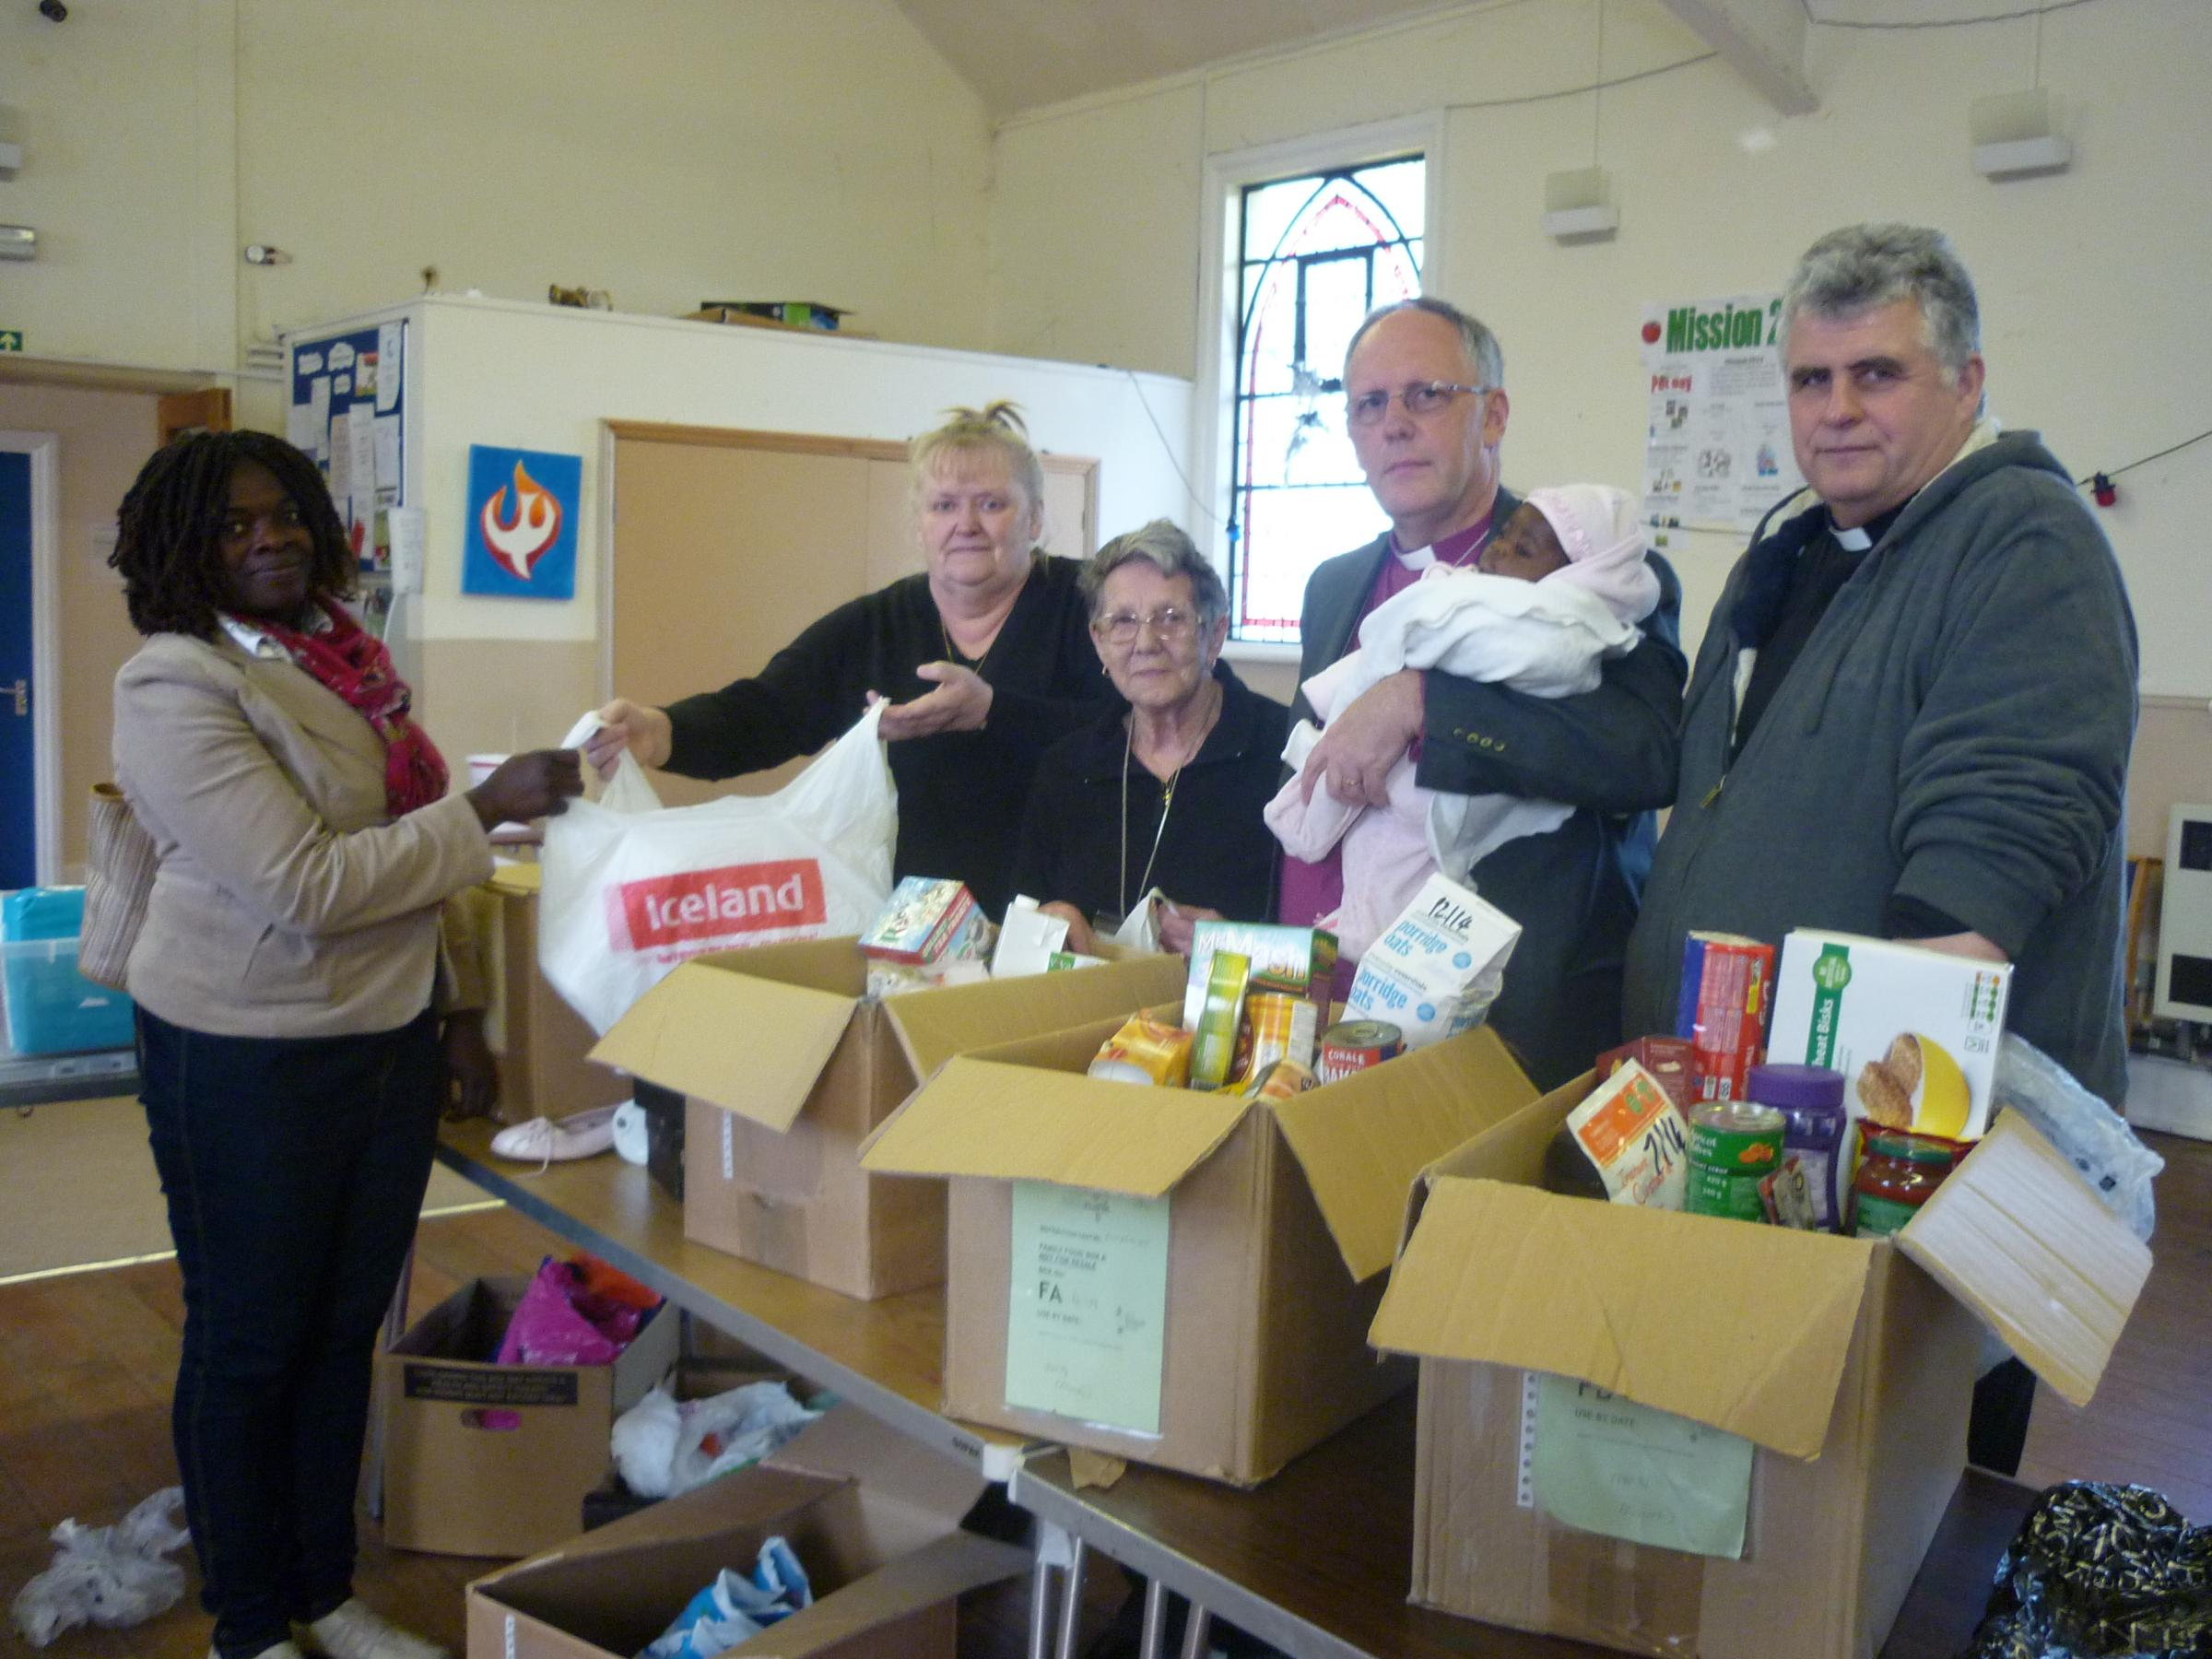 L-R Rita Booh (Food Bank Client), Lynn Mansfield (Volunteer), Iris Holland (Volunteer), Bishop John Wraw and Revd Andy Hudson (Vicar of St Stephen's church).